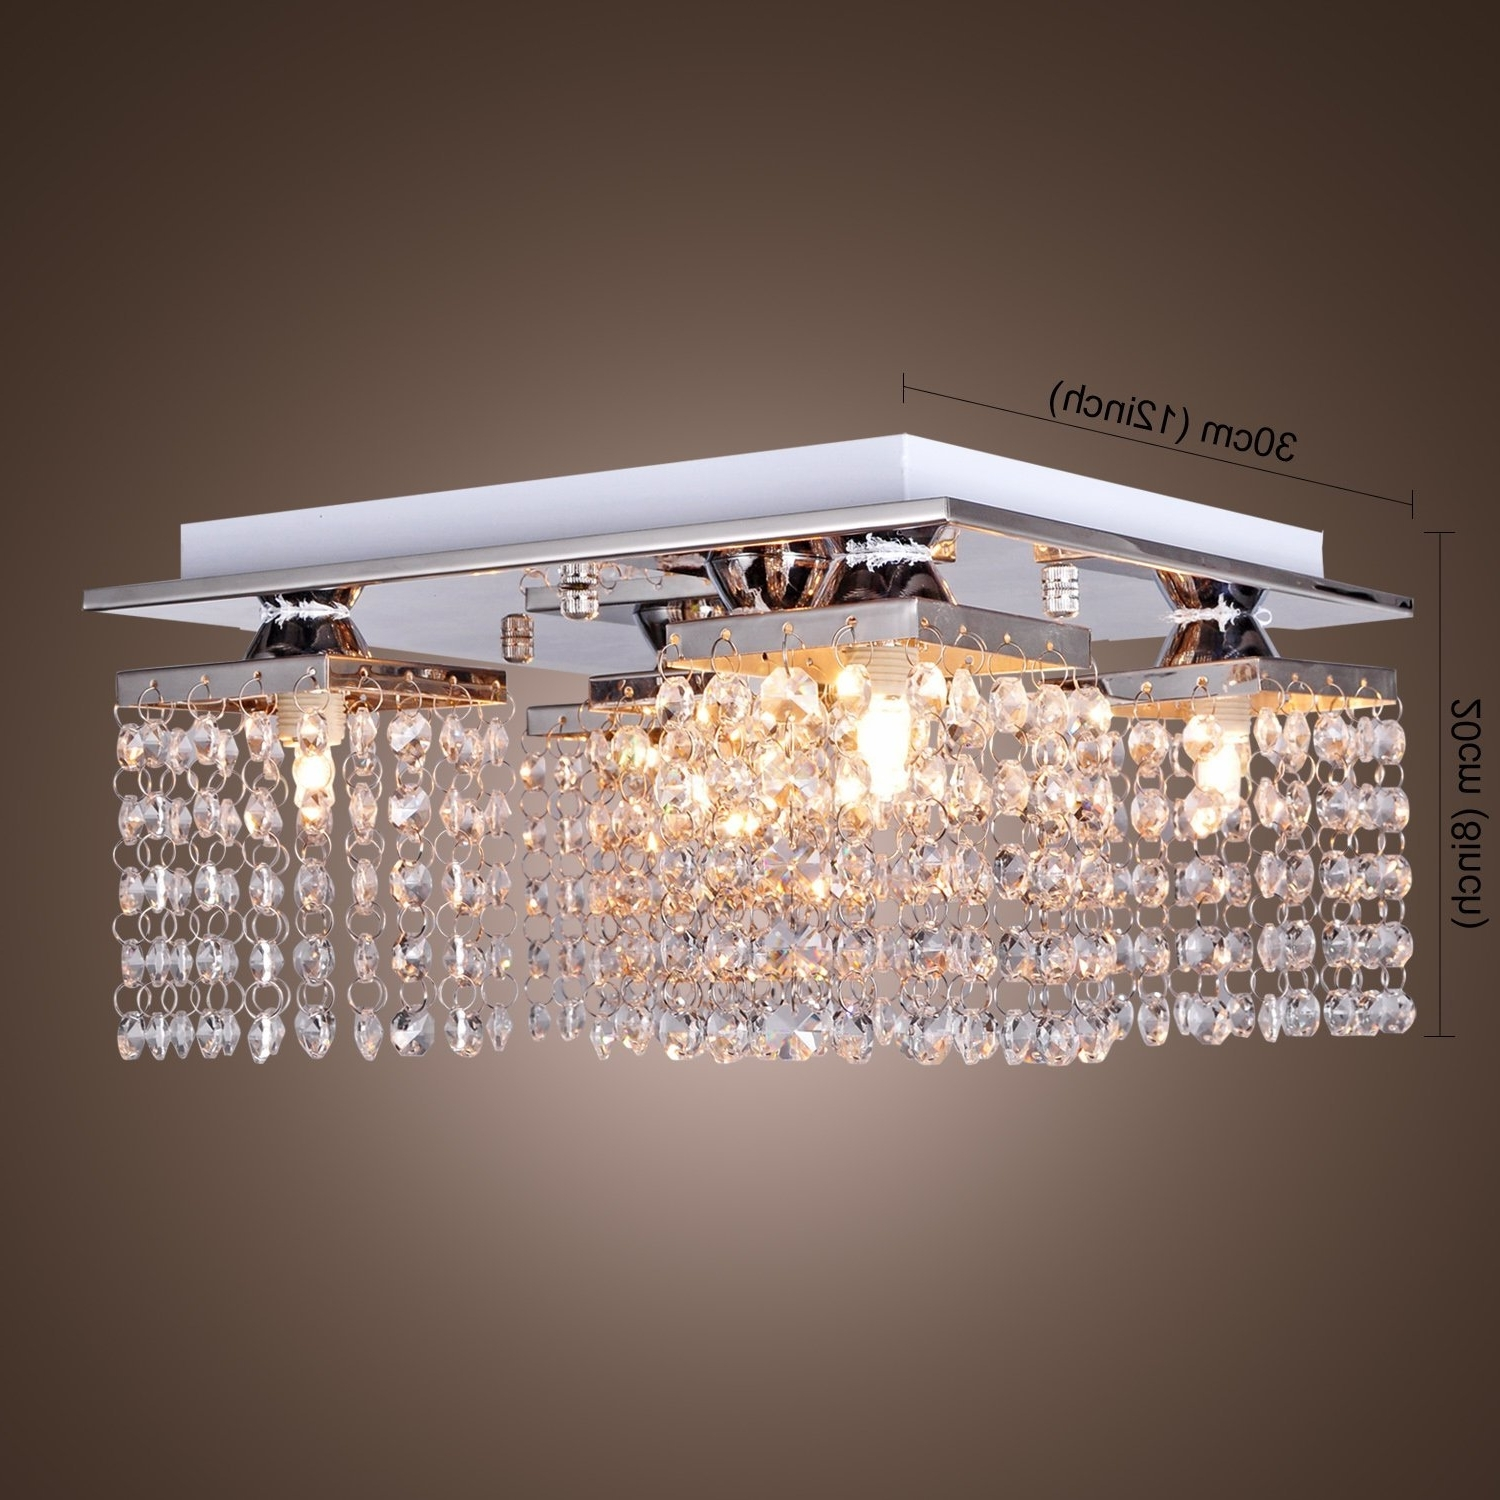 Fashionable Chandeliers For Low Ceilings Regarding Ceiling: Lighting For Low Ceilings (View 9 of 20)